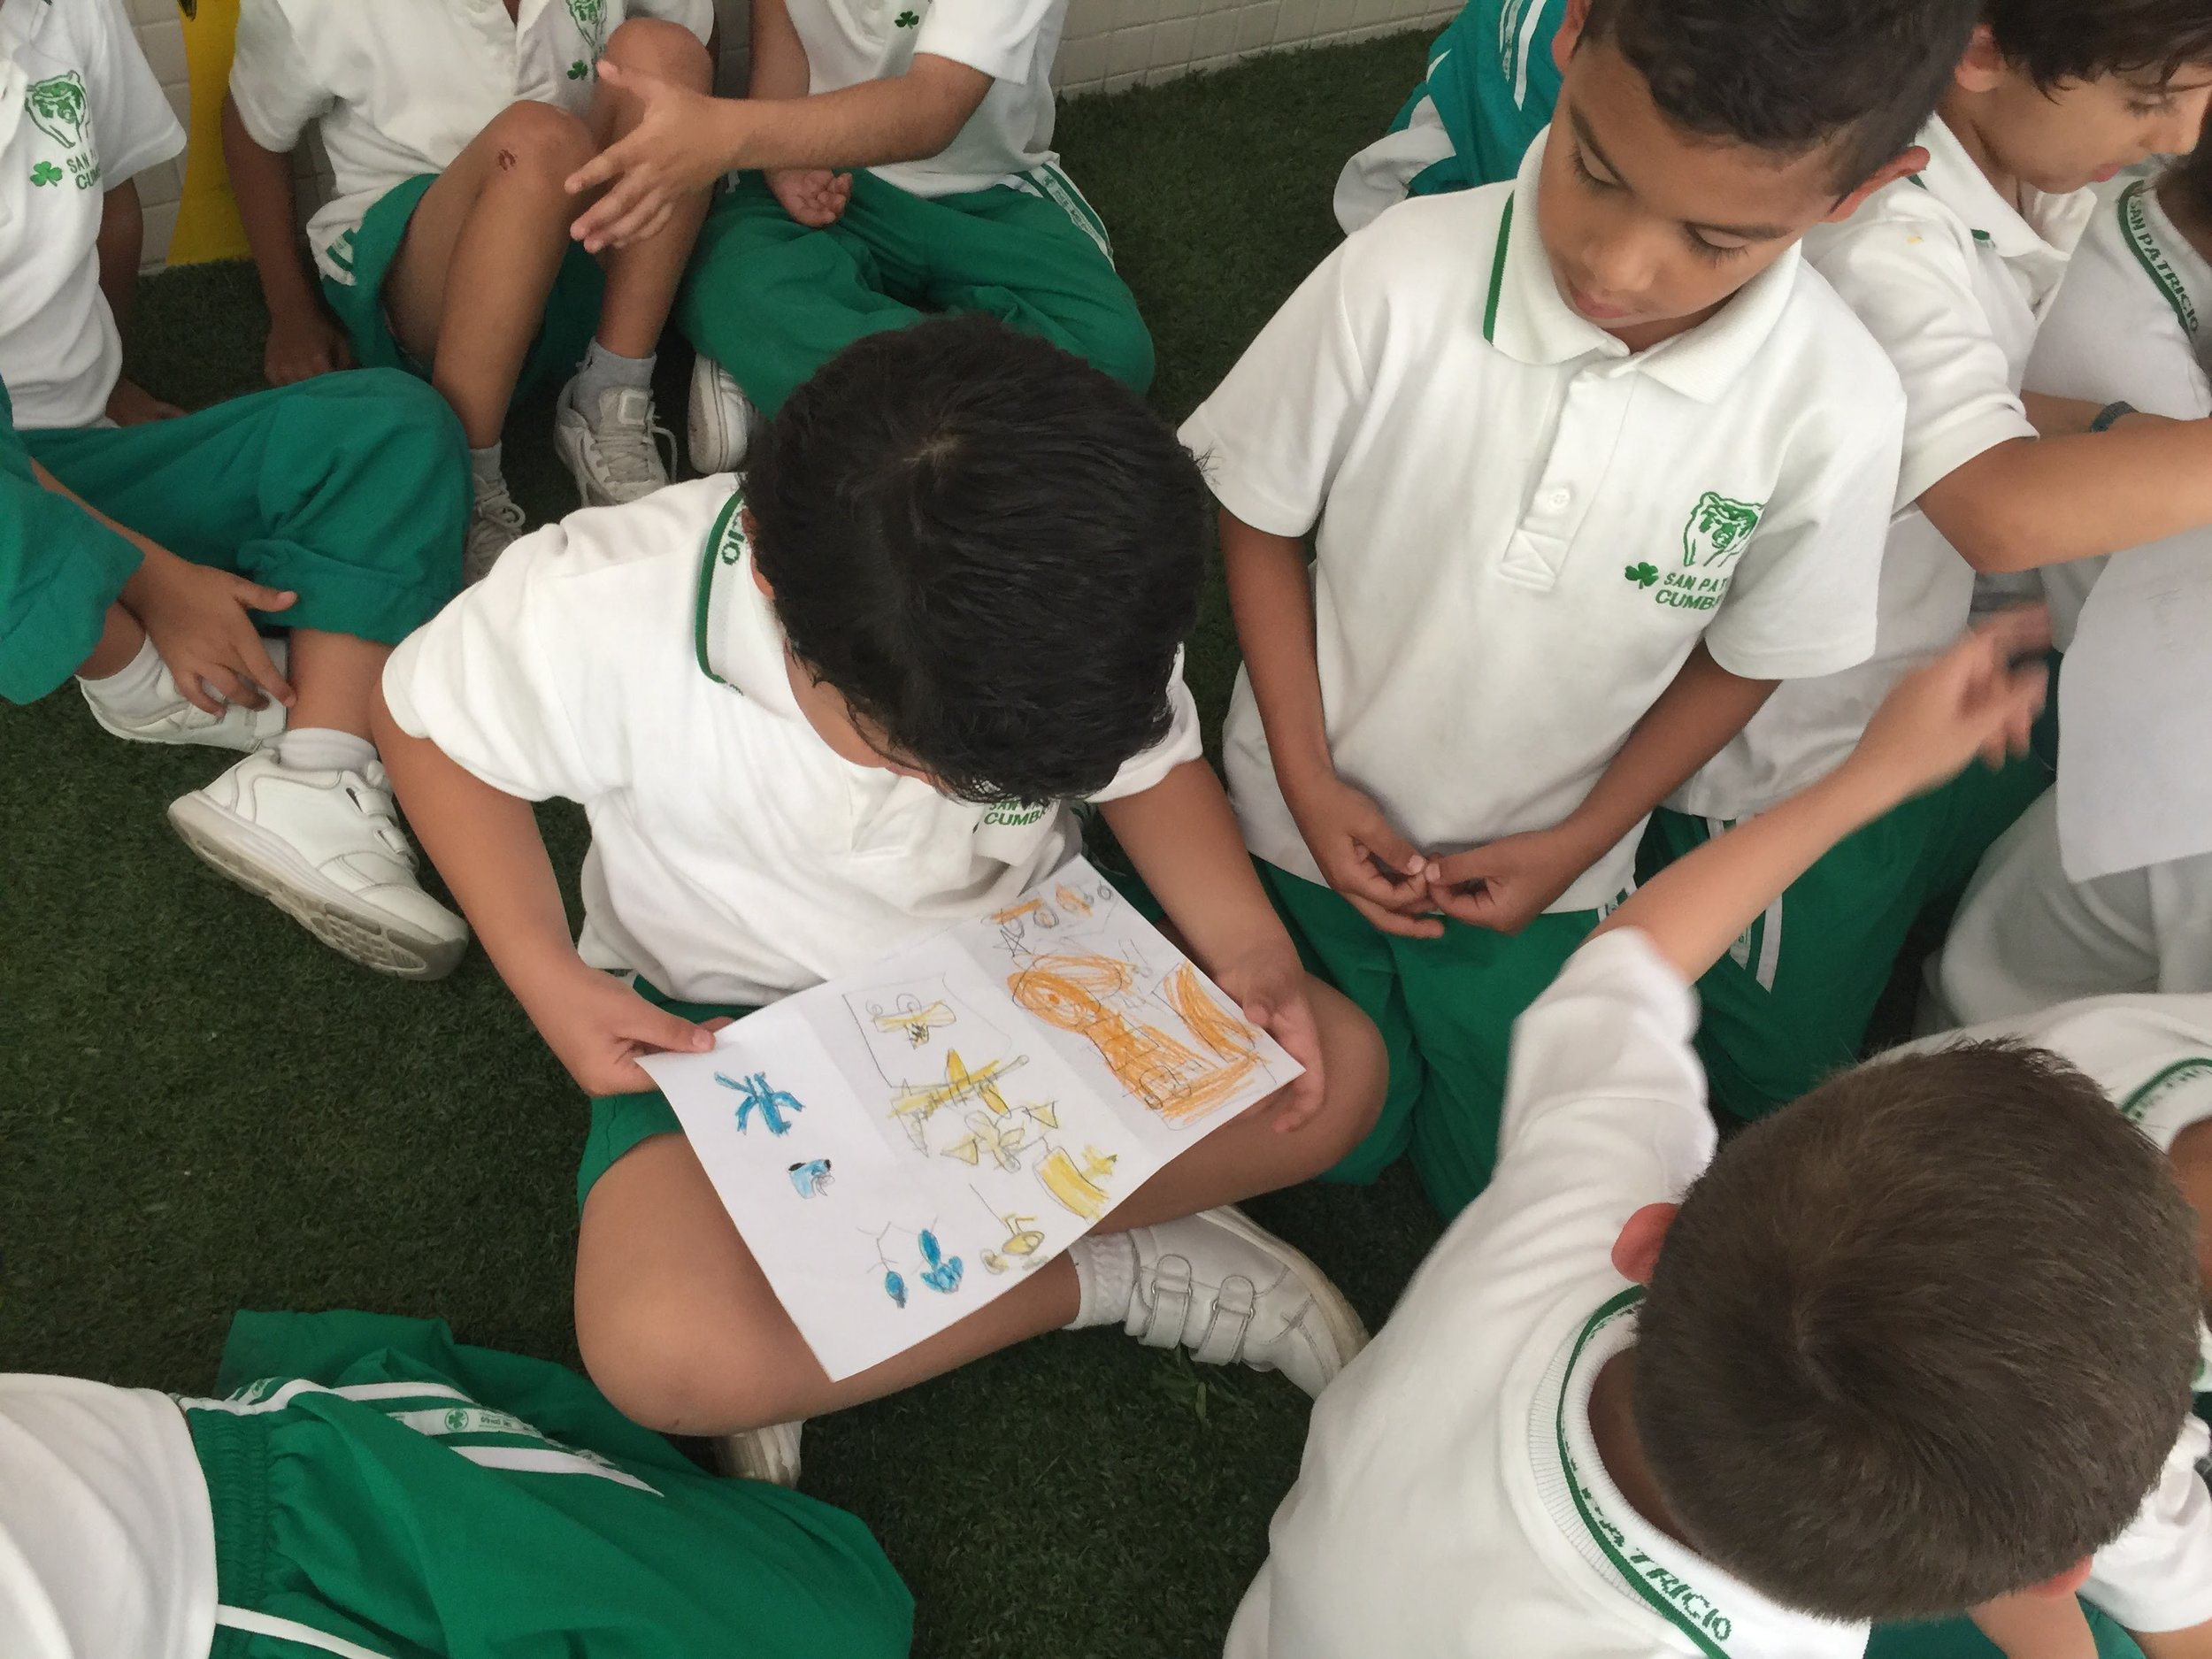 Everybody is so excited to receive artwork from their friends in Dubai!